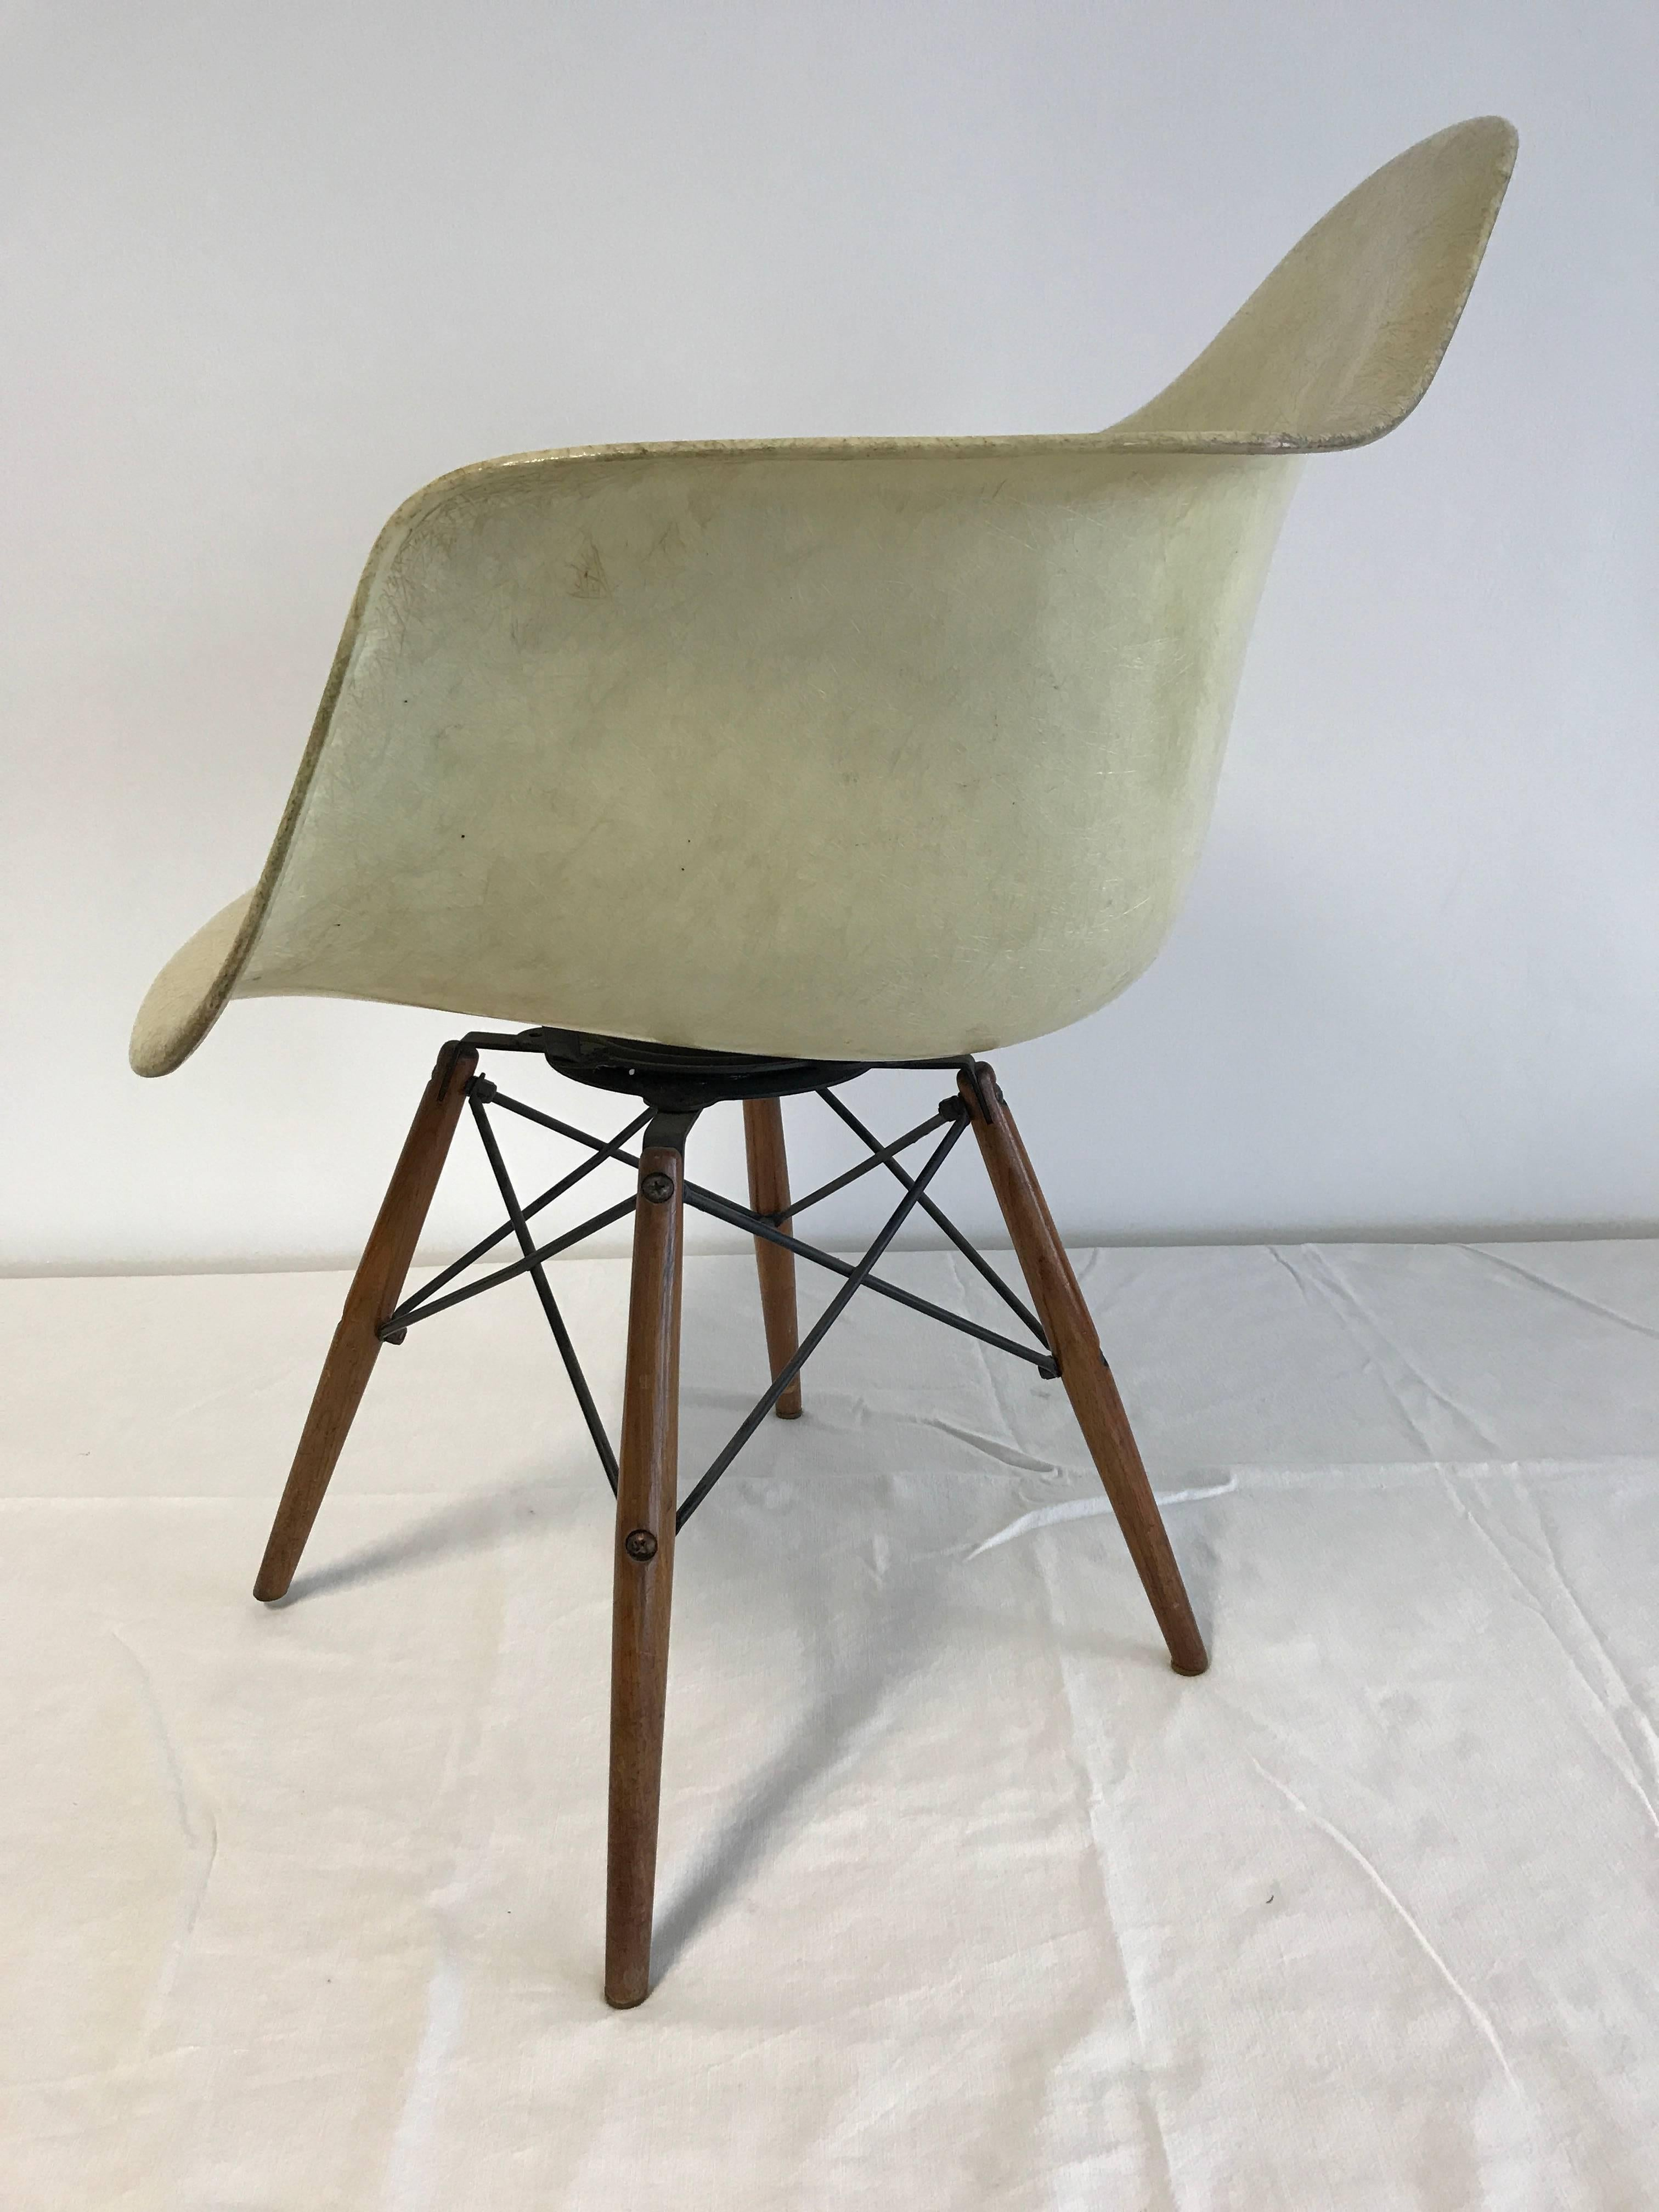 seng chicago chair neon pink first edition charles eames paw swivel fibreglass shell dowel production generation 1949 1950 zenith herman miller rope